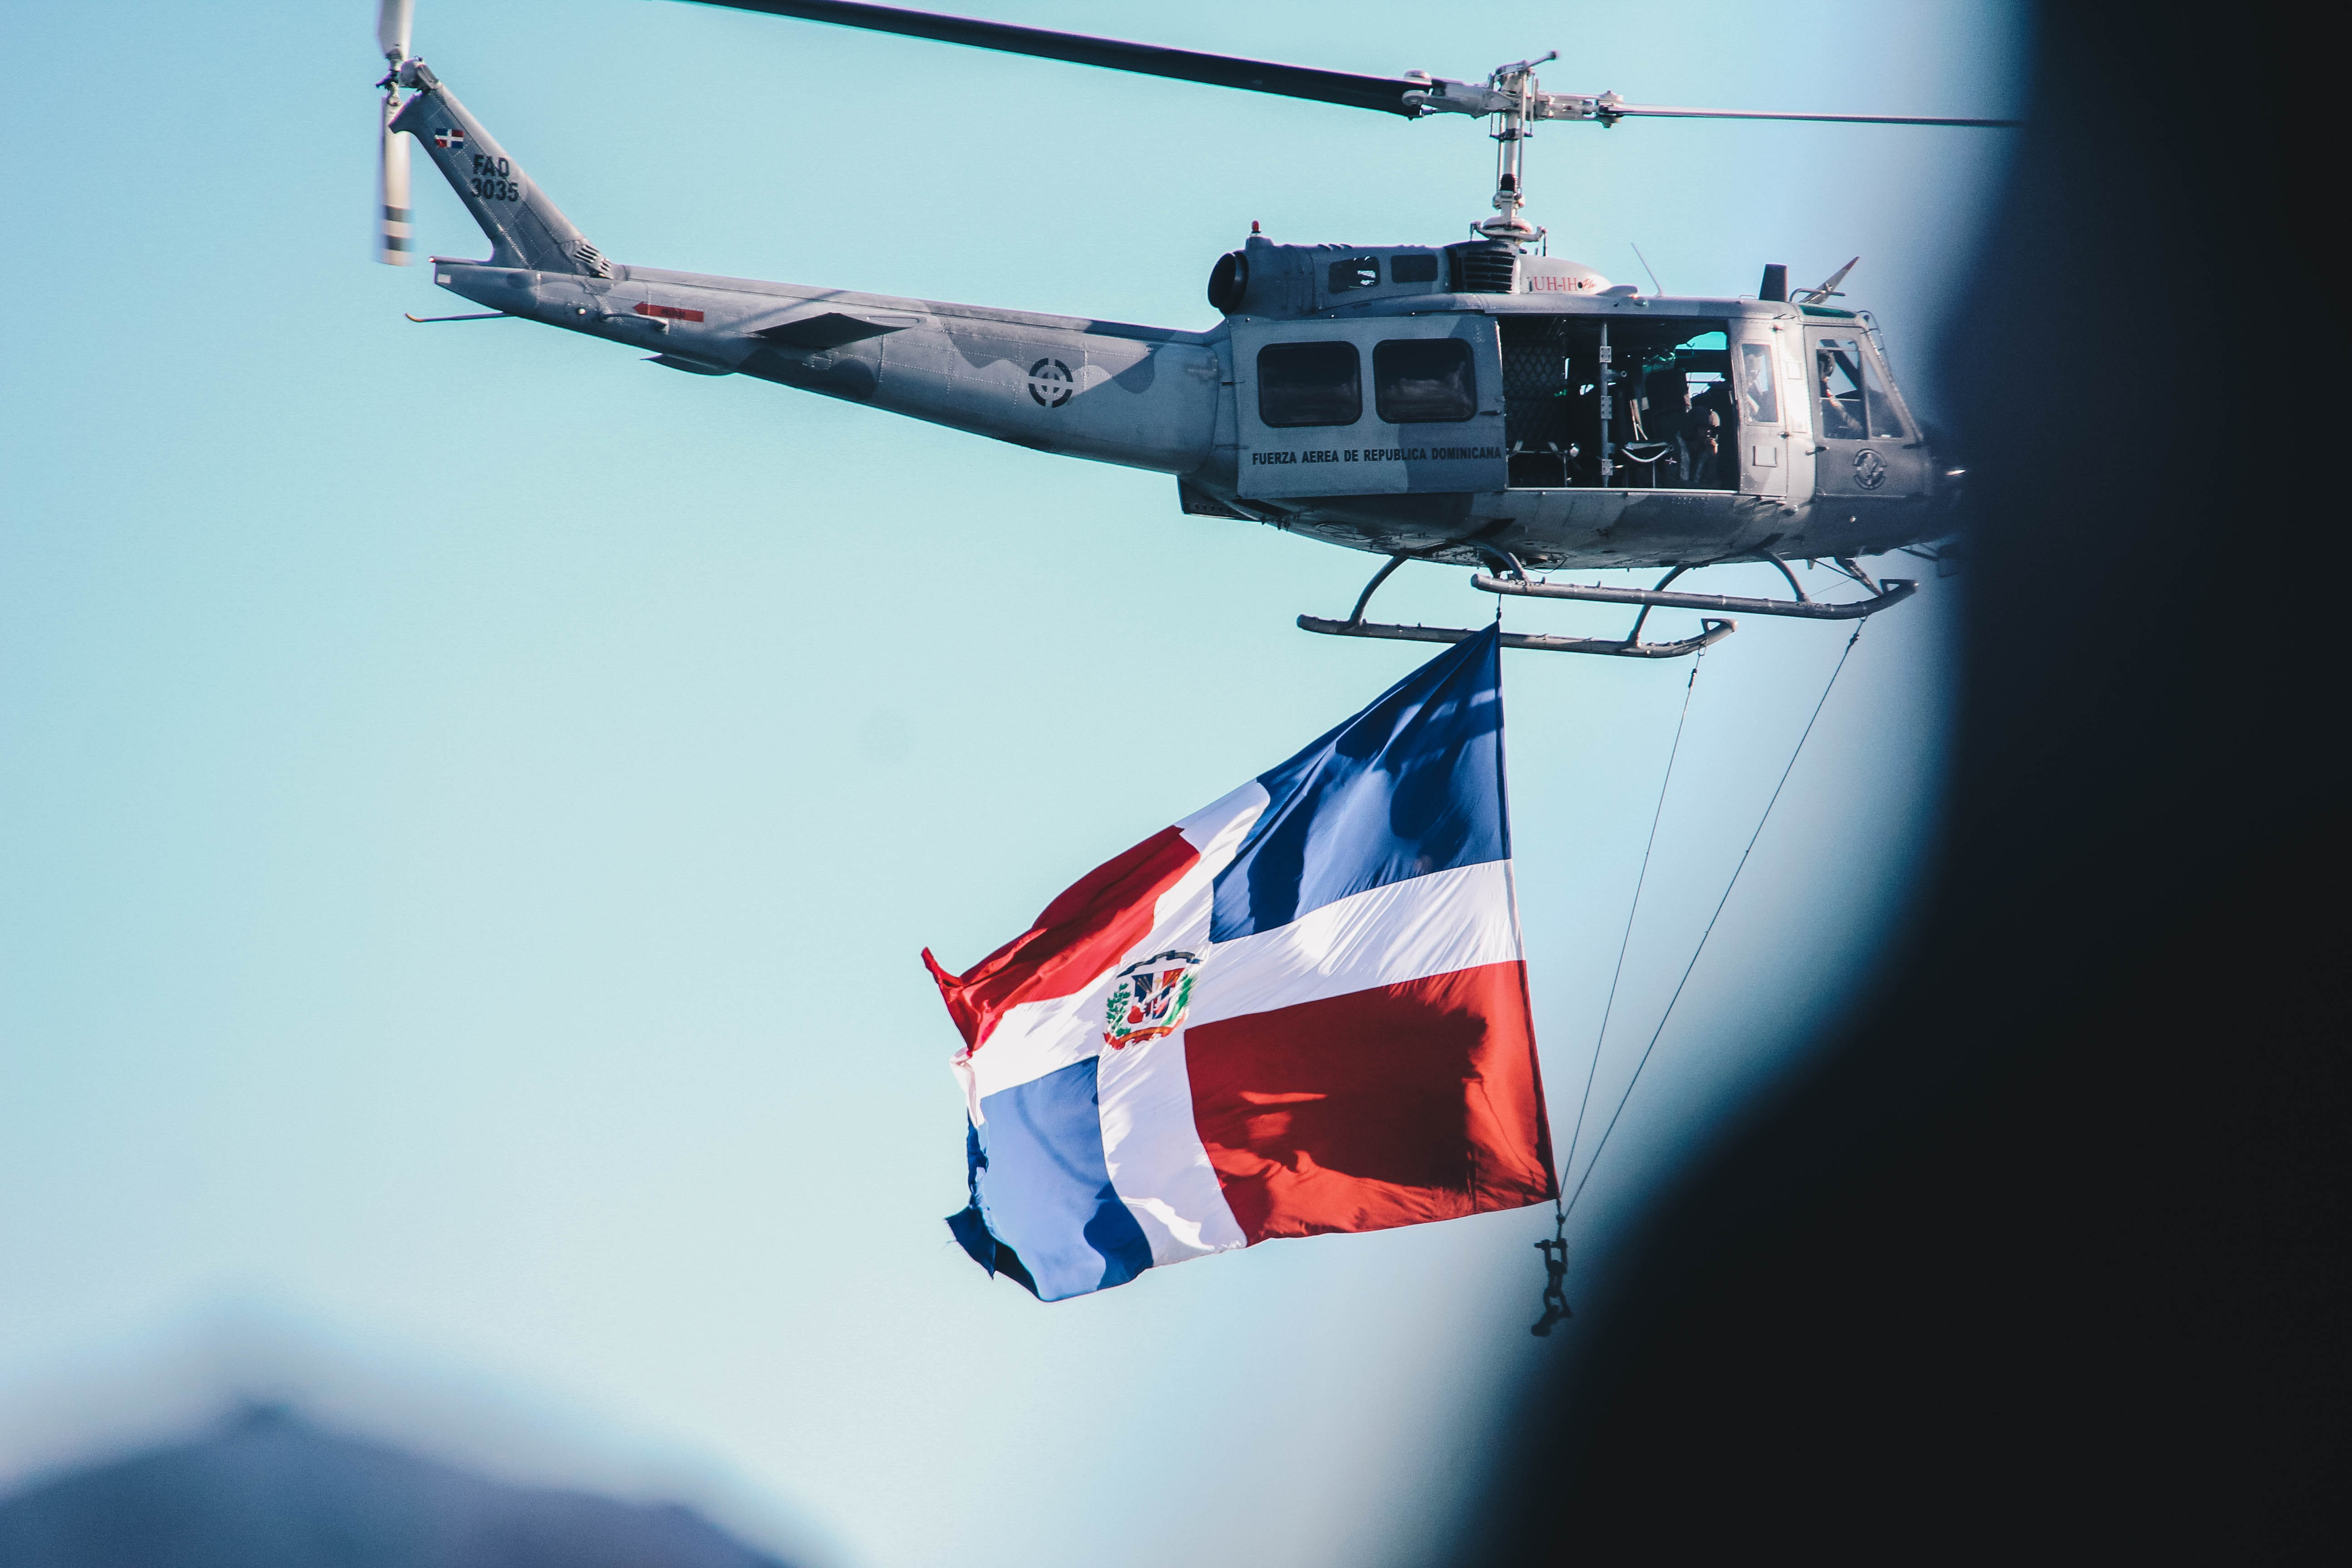 helicopter raising a flag